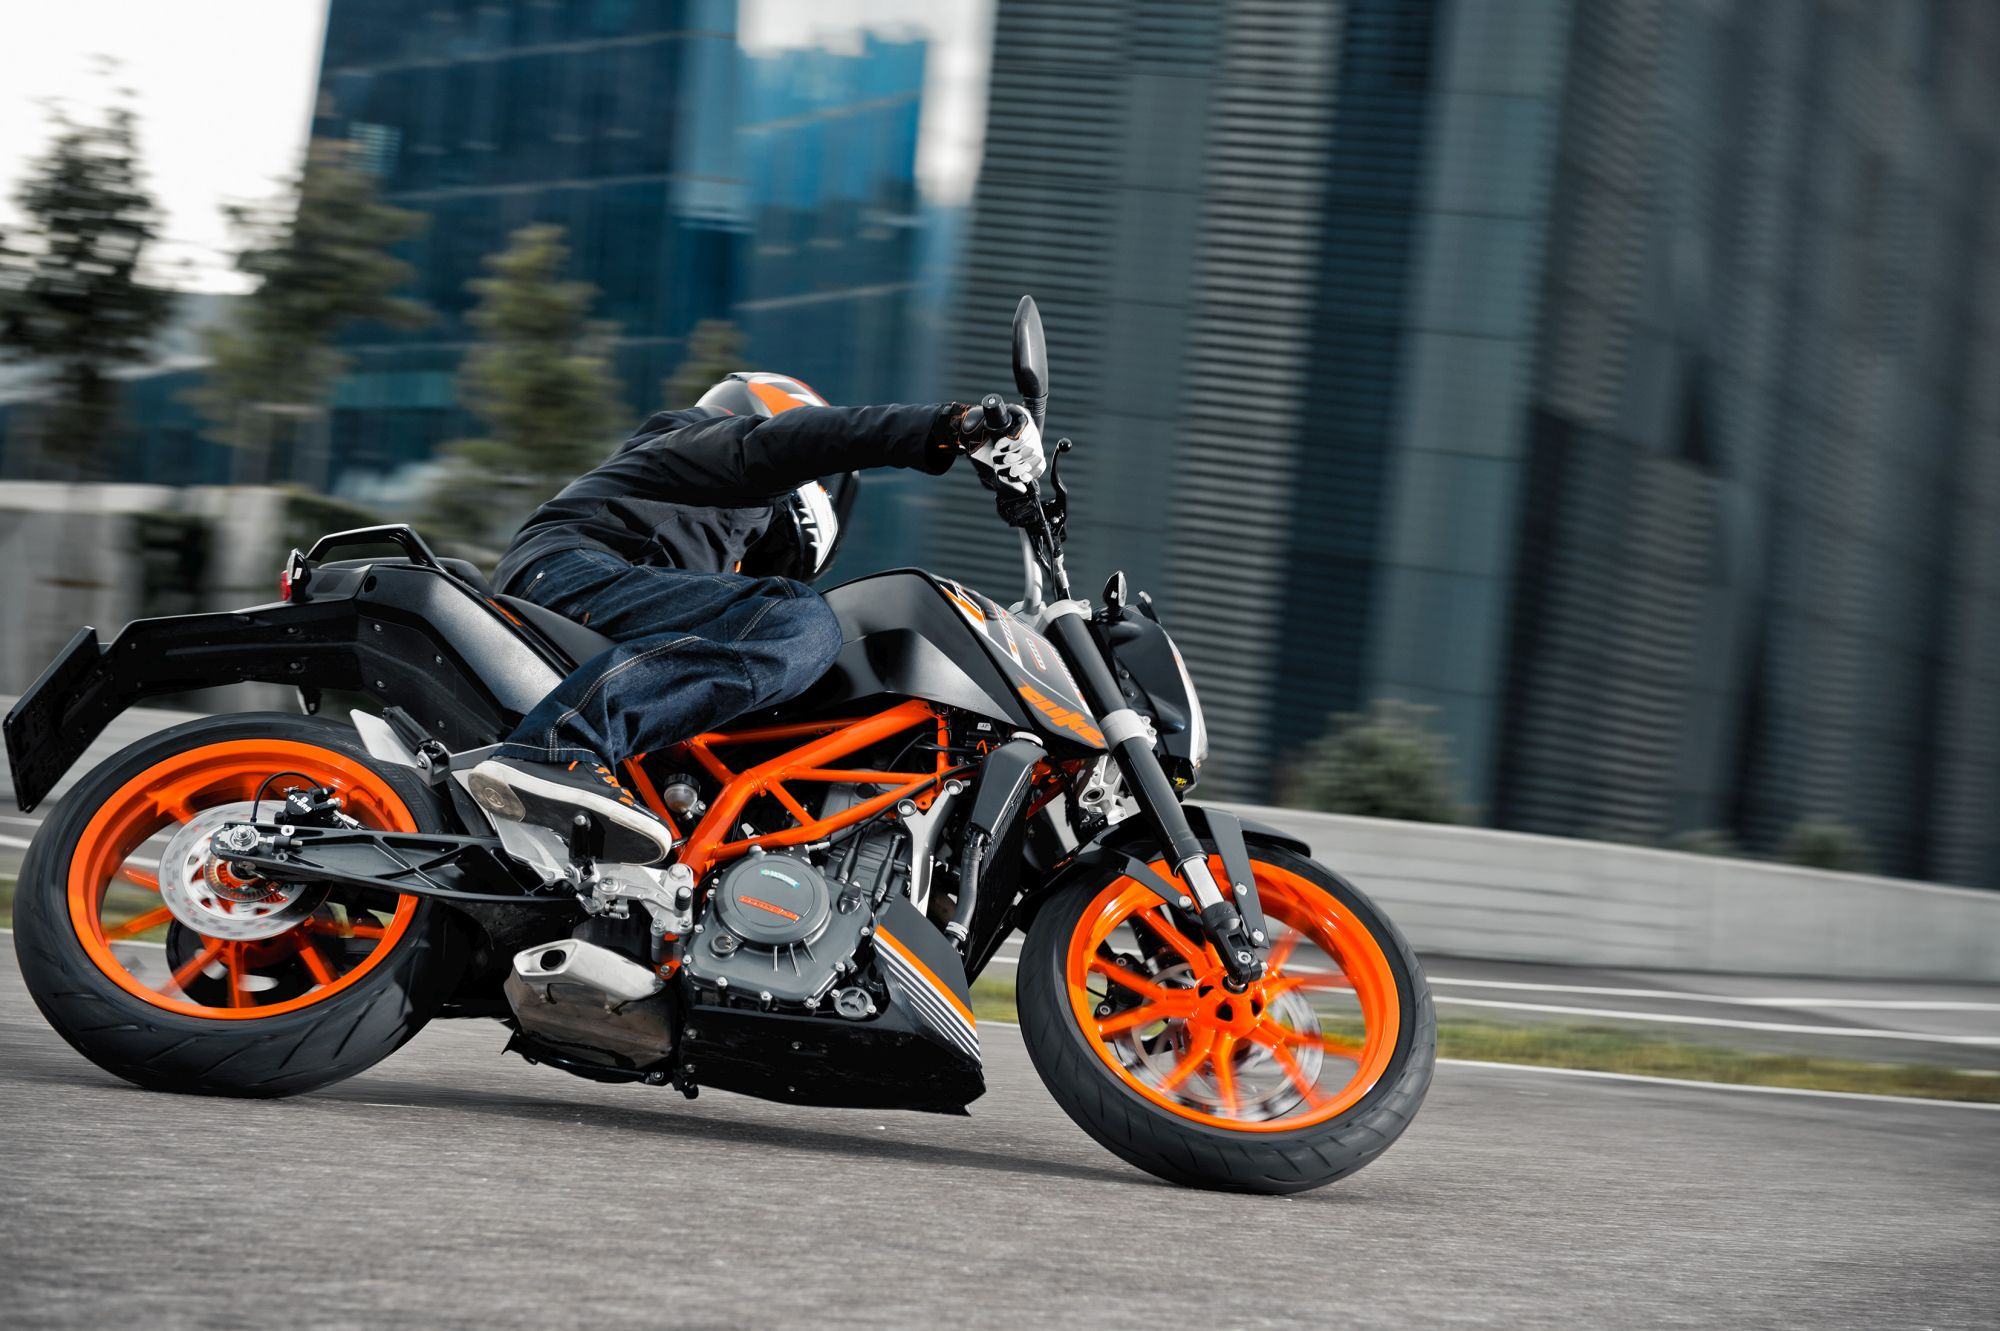 ktm 390 duke all technical data of the model 390 duke from ktm. Black Bedroom Furniture Sets. Home Design Ideas